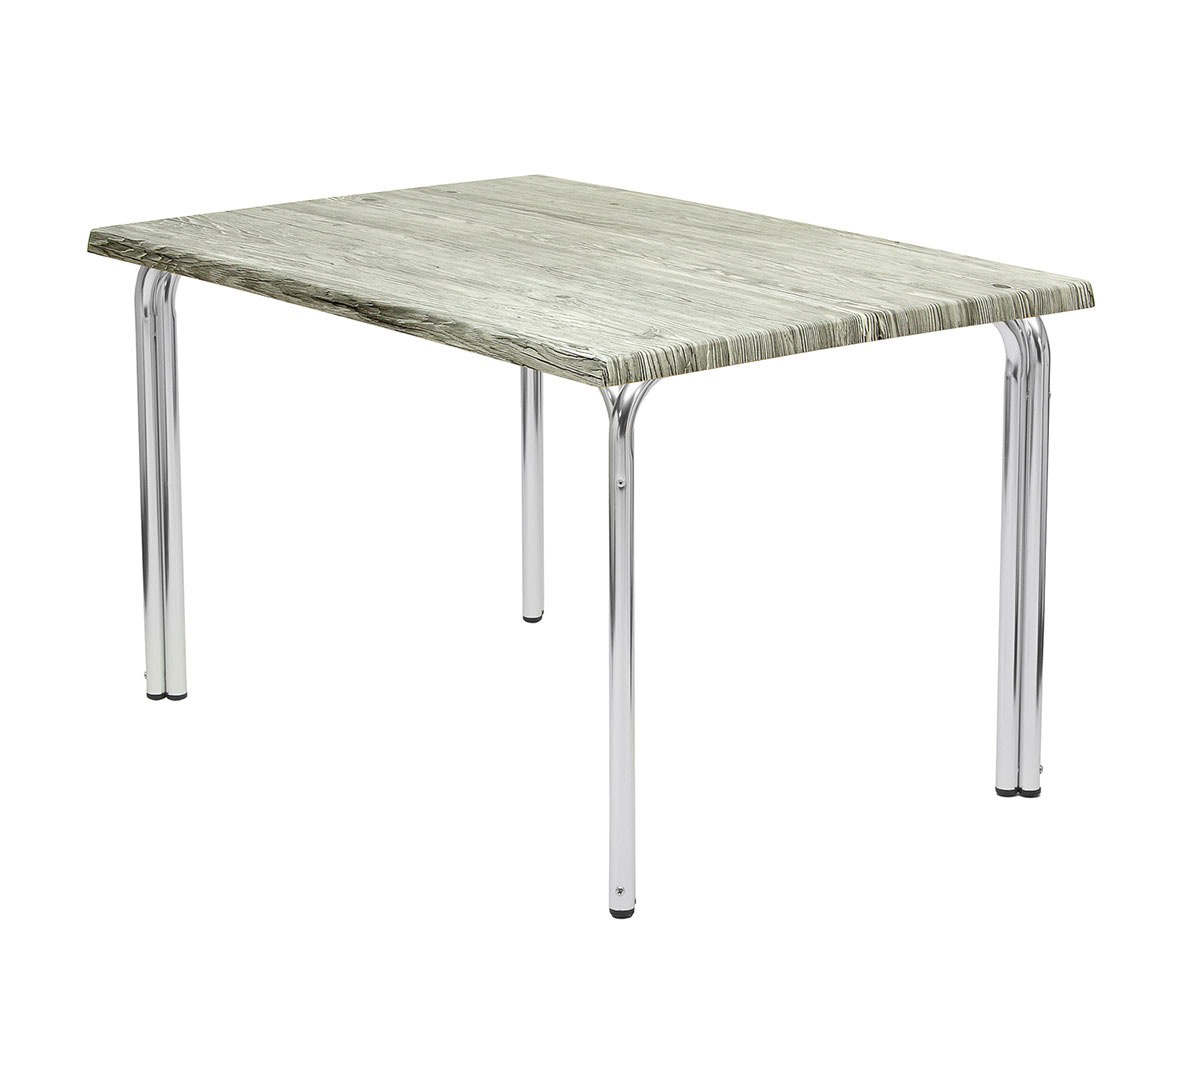 Mesa doble pata rectangular aluminio pulido tablero top urban